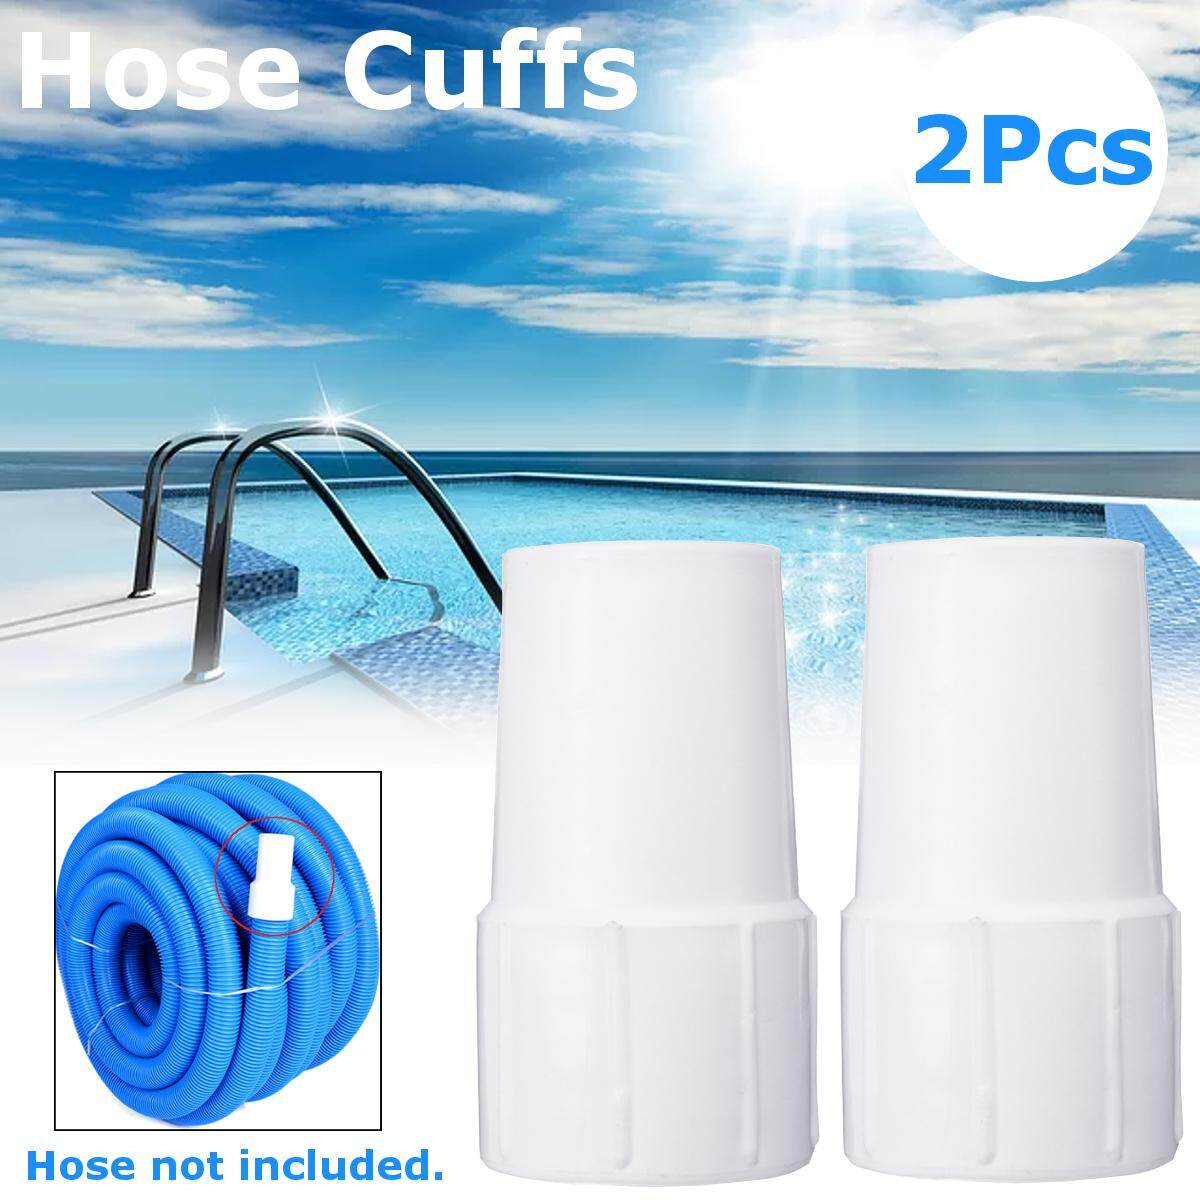 Carpet Cleaning Vacuum Hose SWIVEL Cuffs / Connectors 1.5 inches White Cuffs 2 pcs